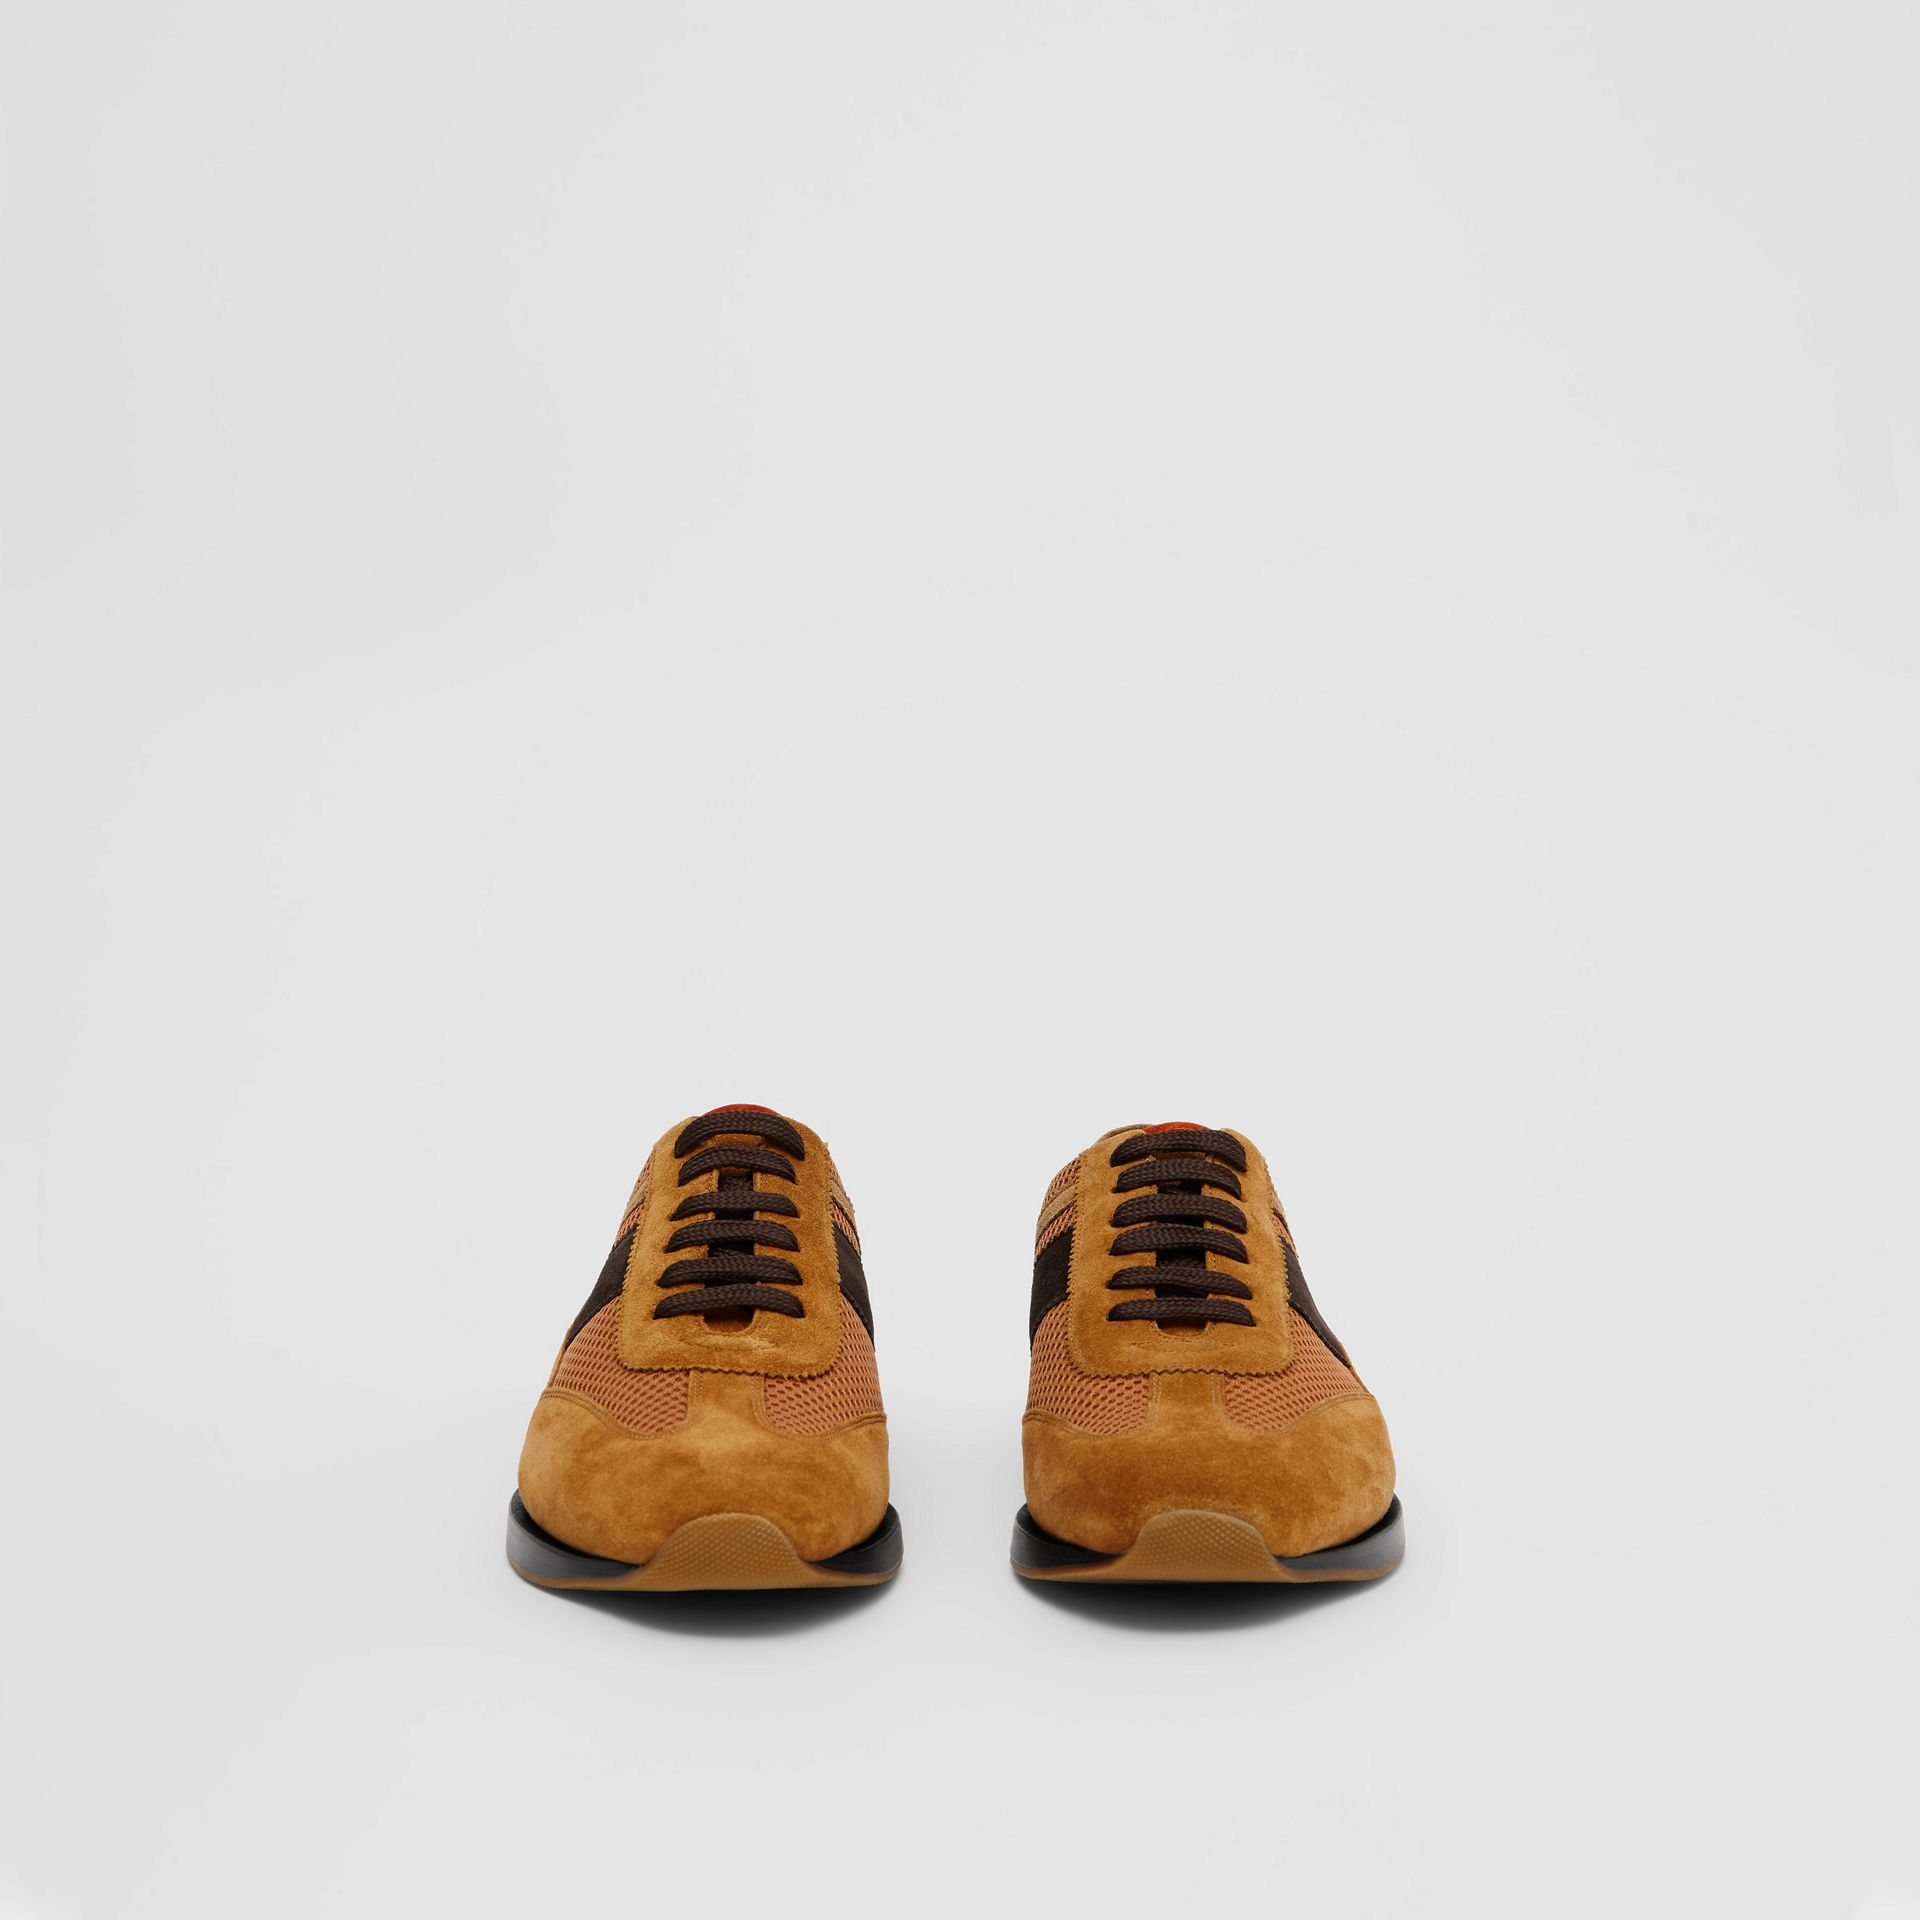 Mesh Panel Suede Lace-up Shoes in Mix Tan - Men | Burberry United States - gallery image 2